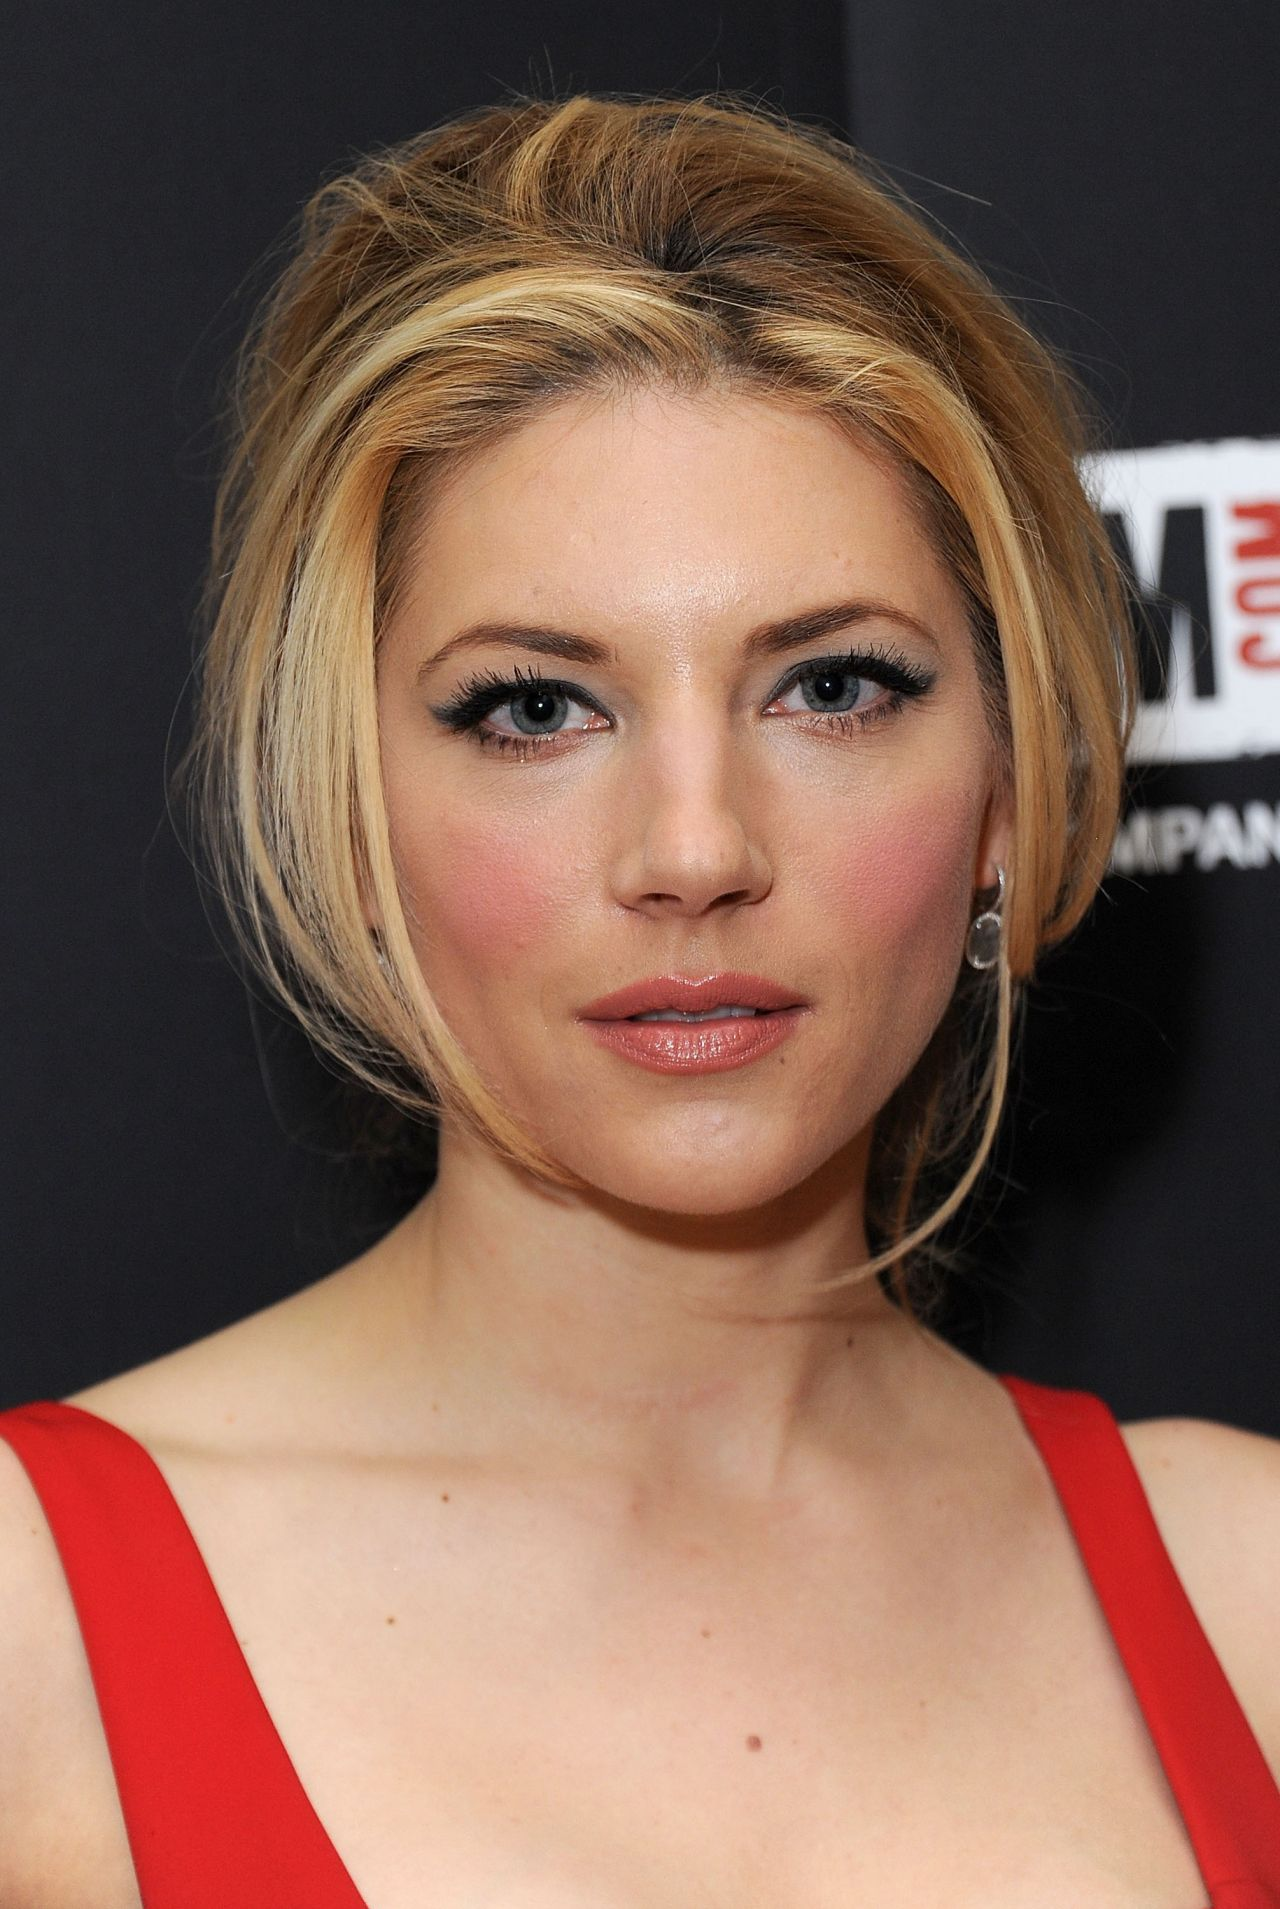 Katheryn Winnick - VIKINGS Season Two UK Premiere in London (2014)